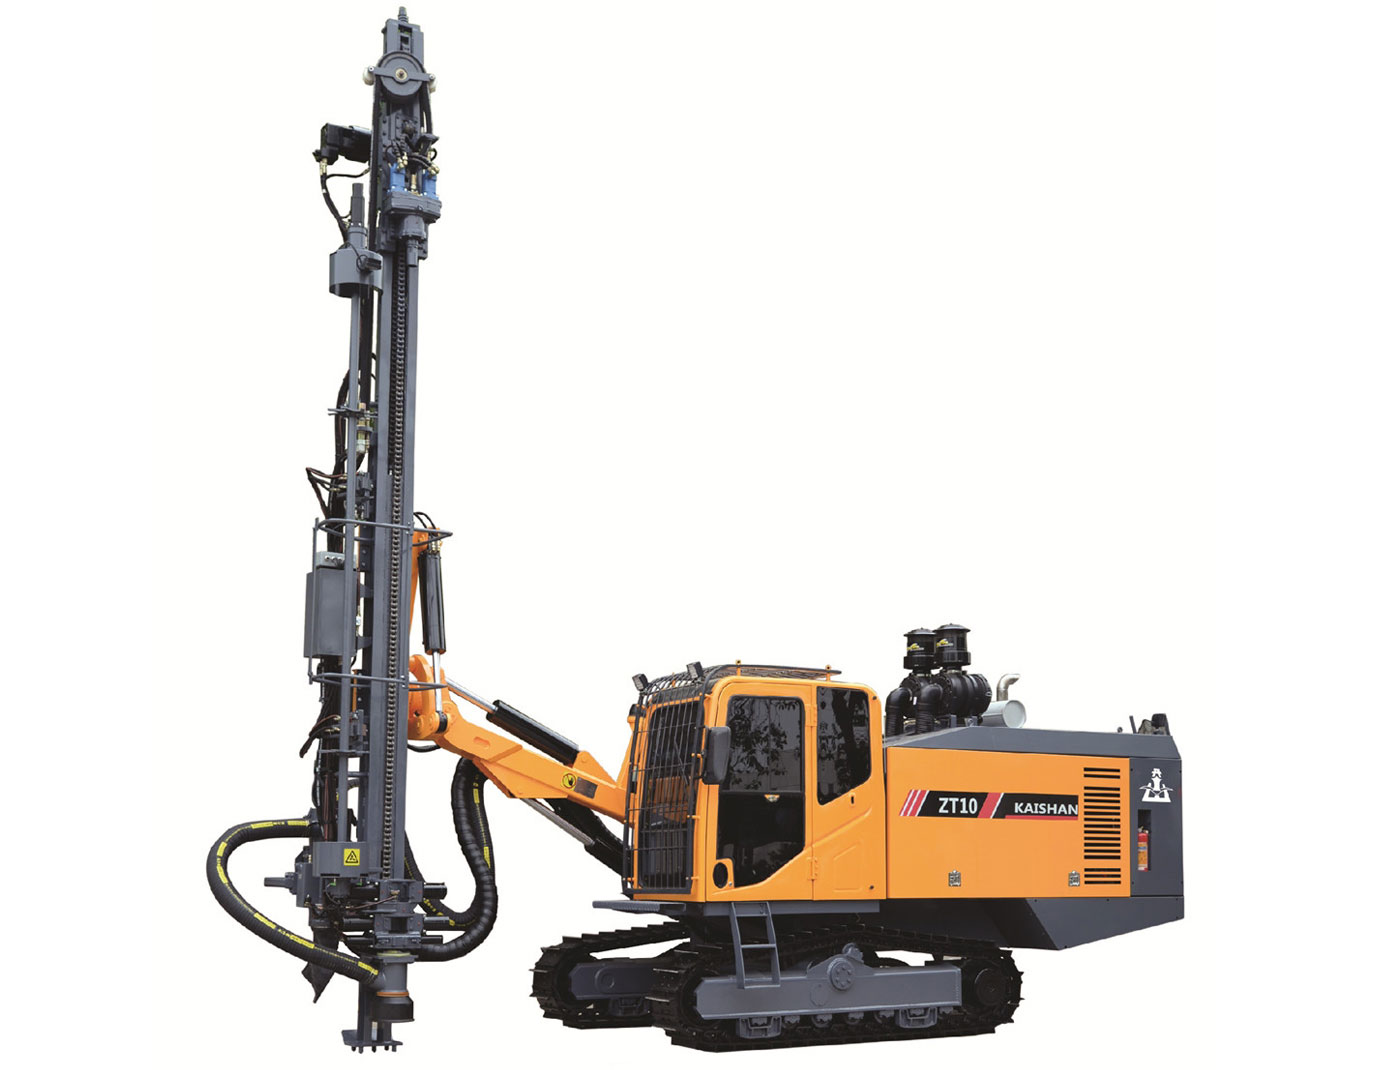 KAISHAN ZT10 integrated drilling rig